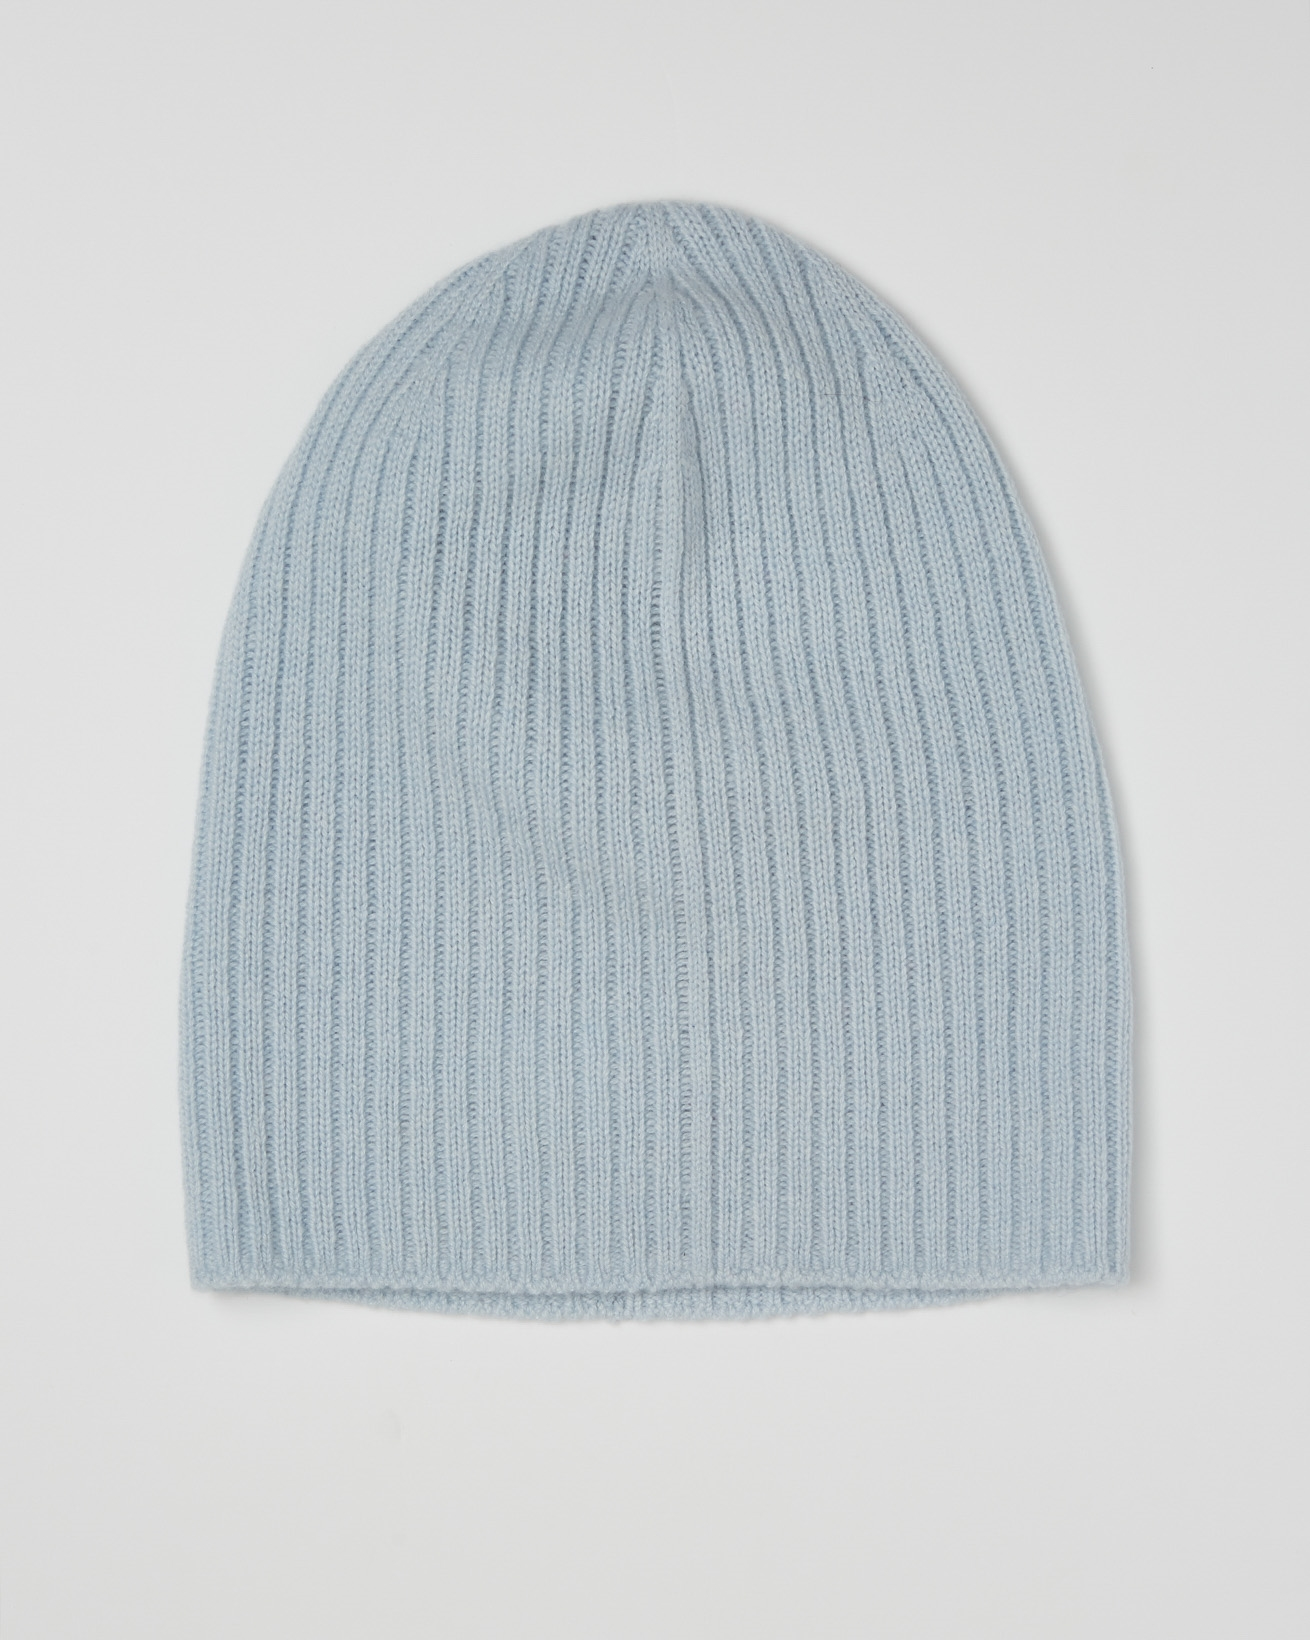 Cashmere Ribbed Beanie - Light Blue - One Size - 2619